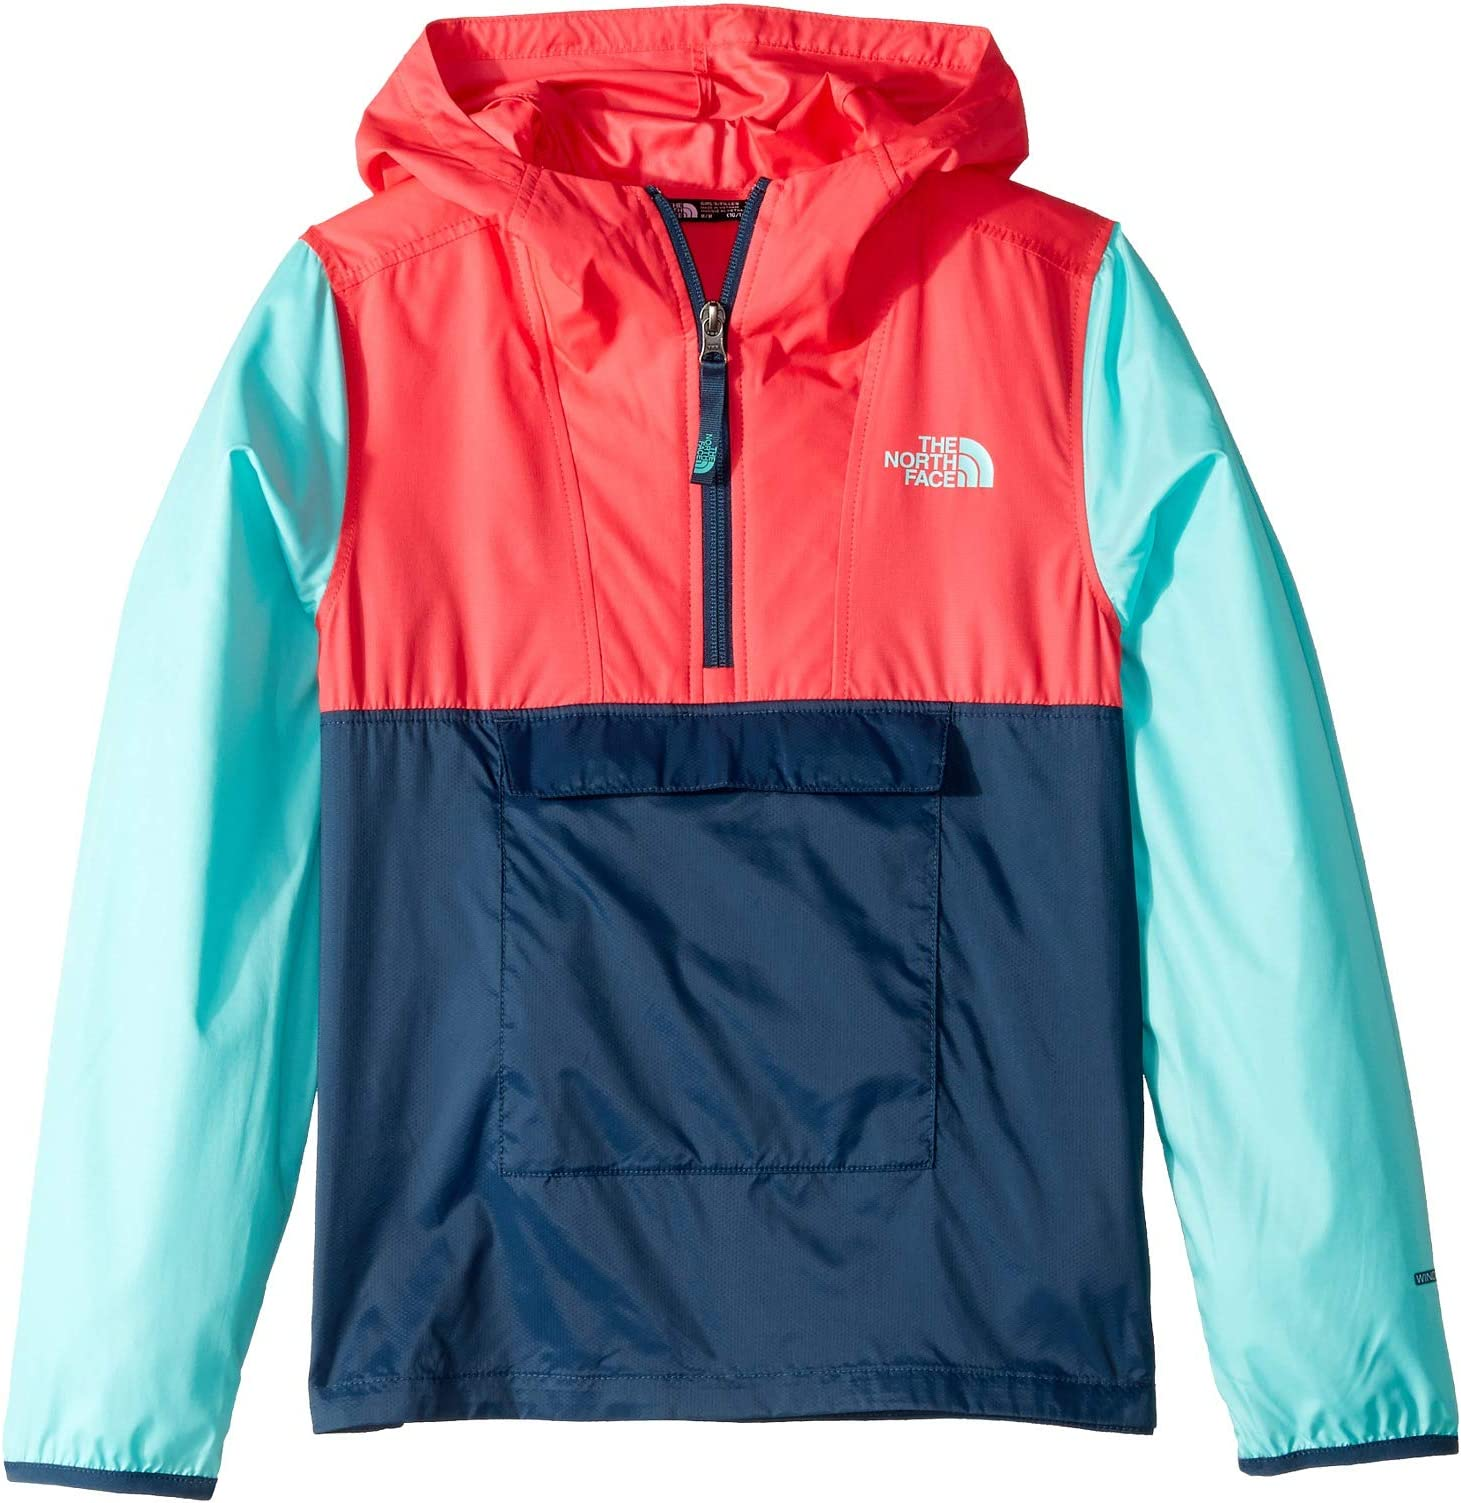 1f1b0d34e13a The North Face Outerwear